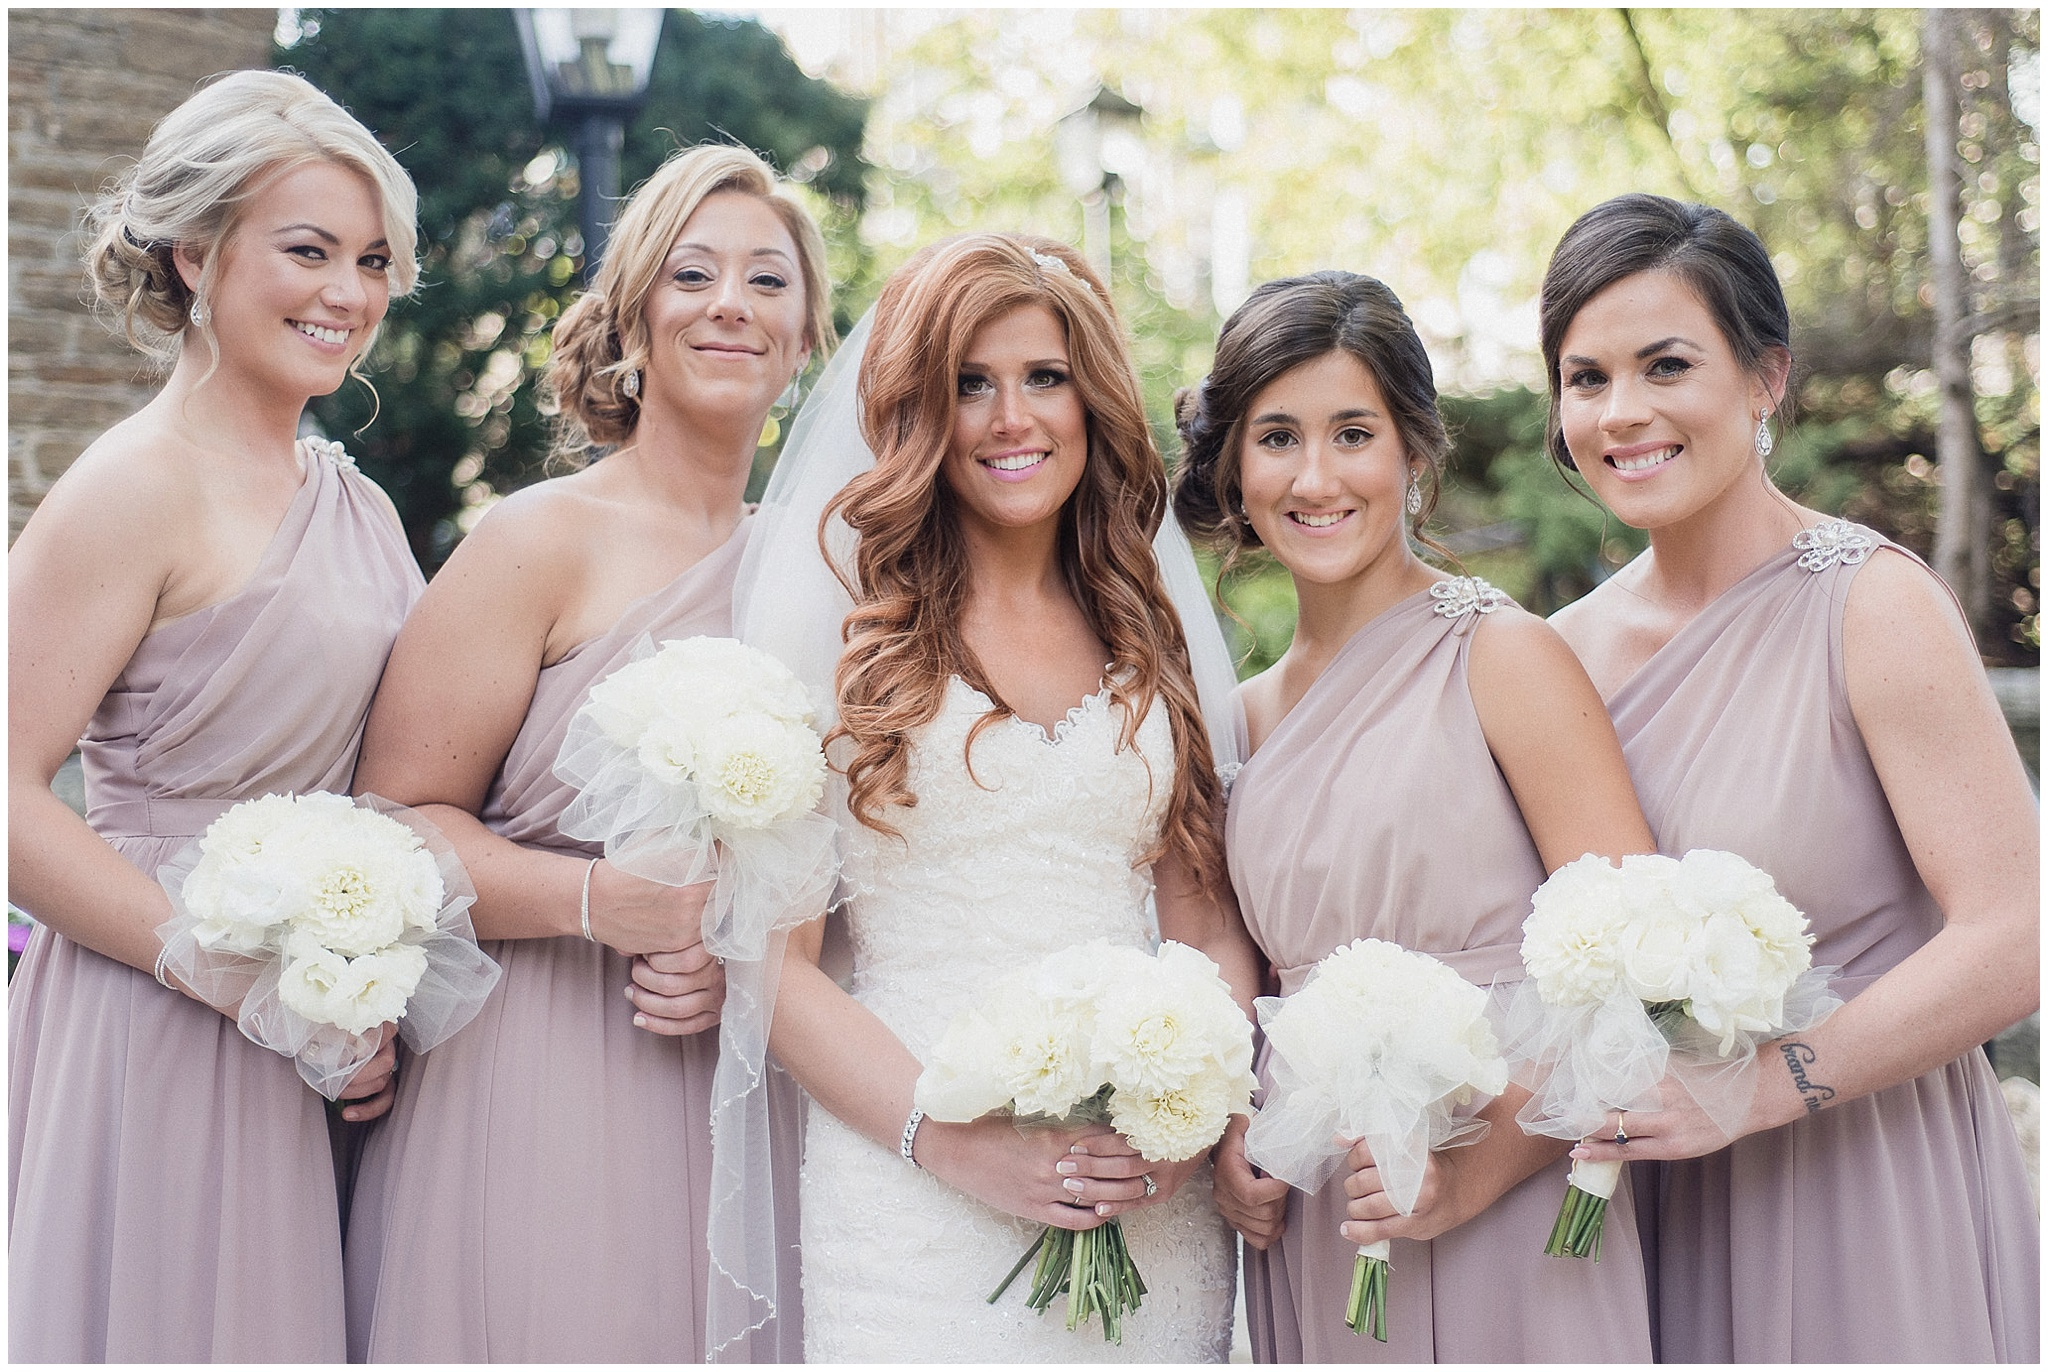 Dusty rose bridesmaids dresses photographed by Jenn Kavanagh Photography